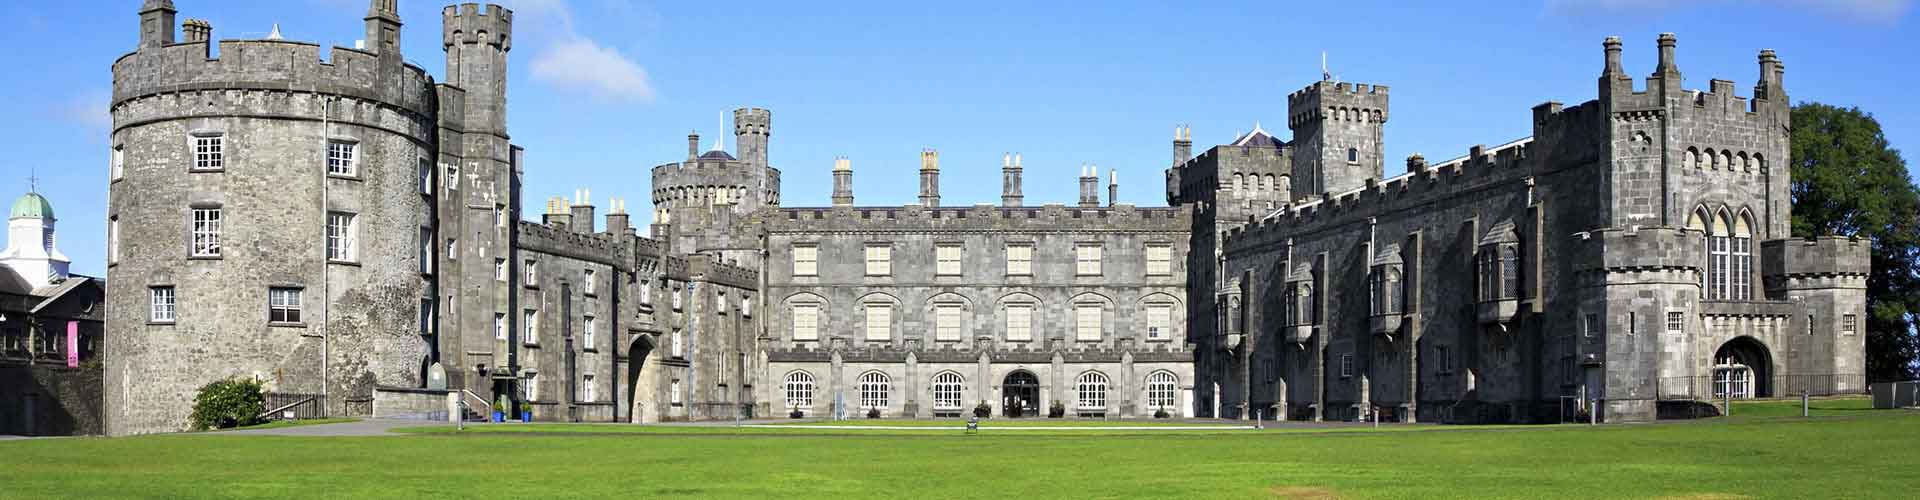 Kilkenny – Hostels in Kilkenny. Maps for Kilkenny, Photos and Reviews for each hostel in Kilkenny.